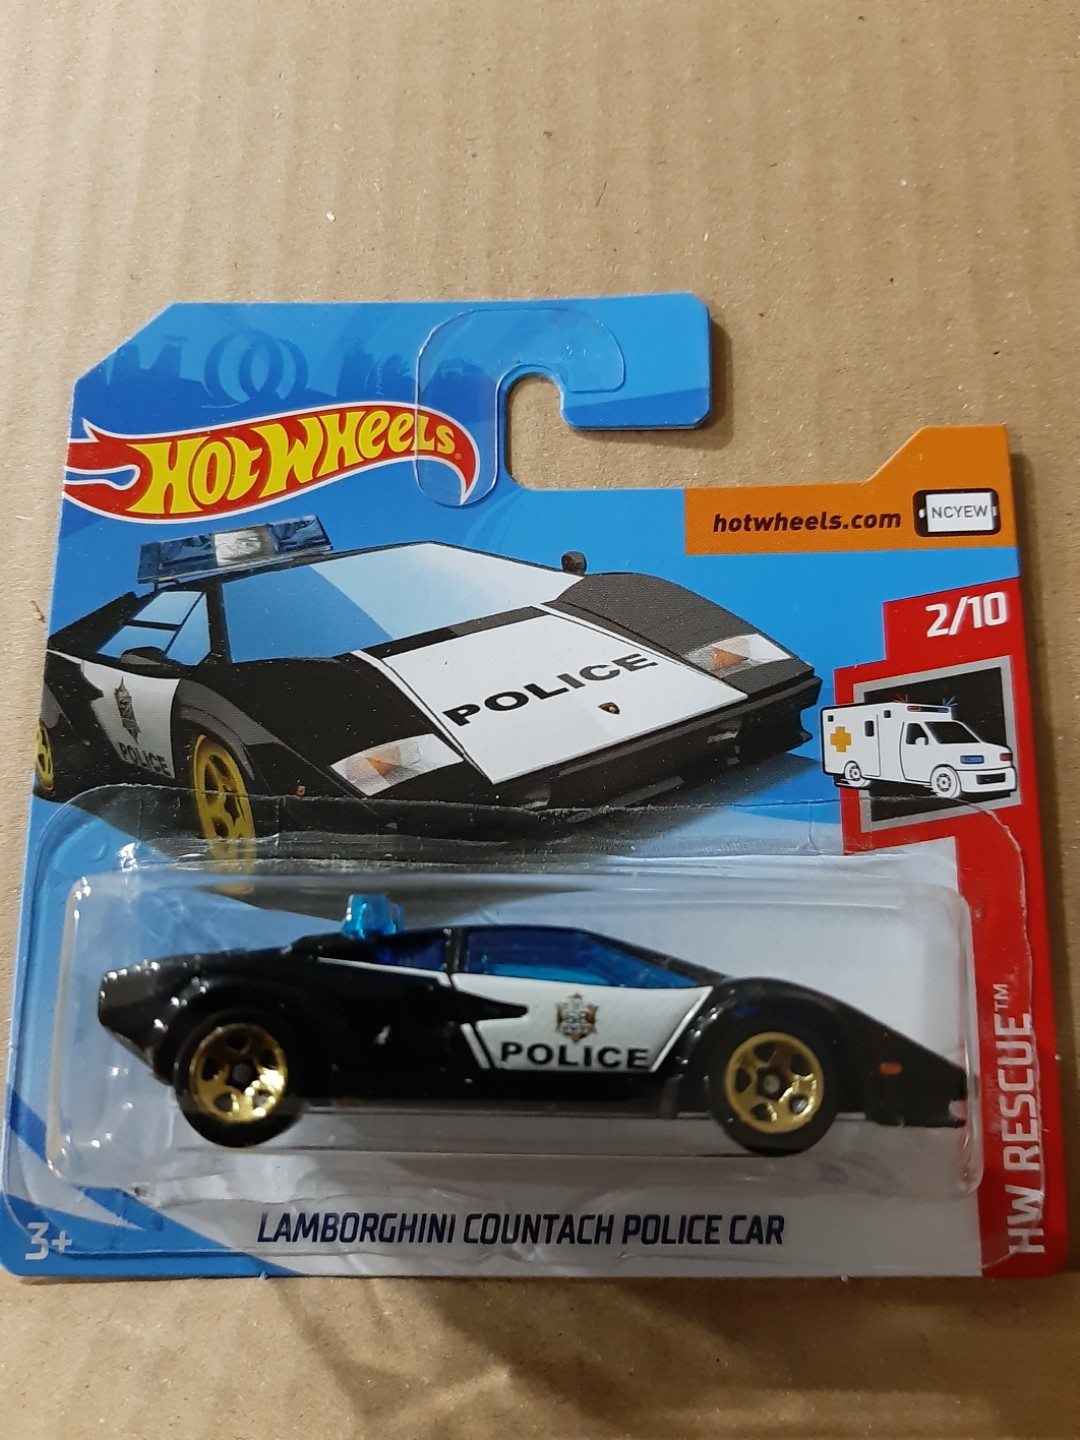 Hot Wheels Lamborghini Countach Police Car Toys Games Others On